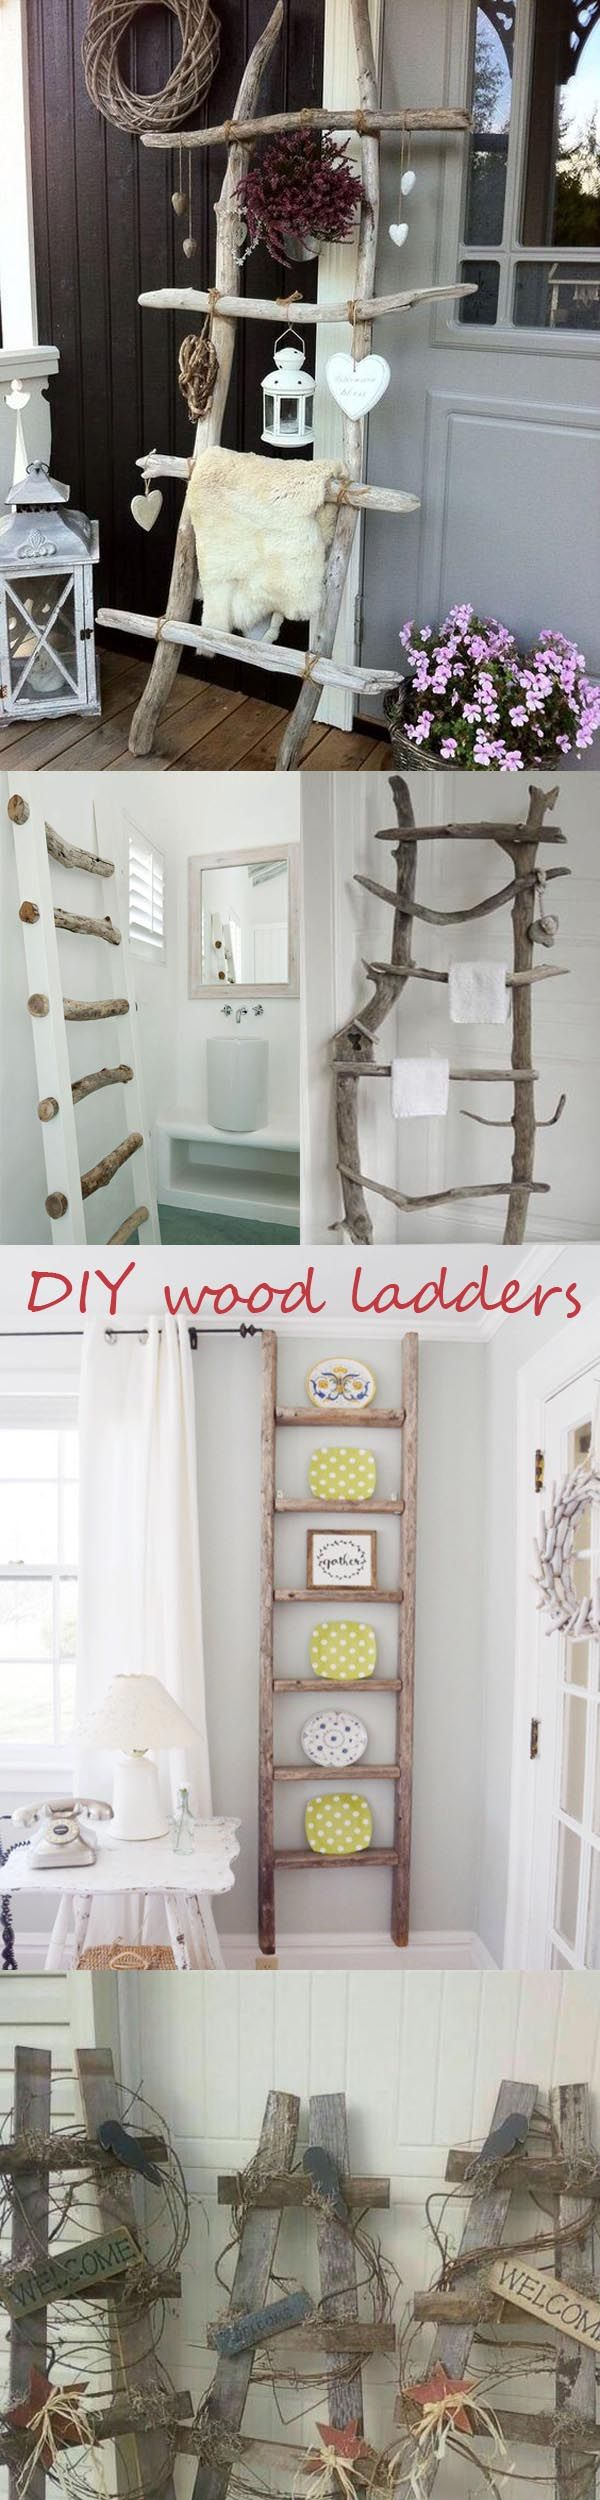 DIY Home décor ideas with natural wood and branch crafts to create a vintage look: DIY wood ladders to decorate your room